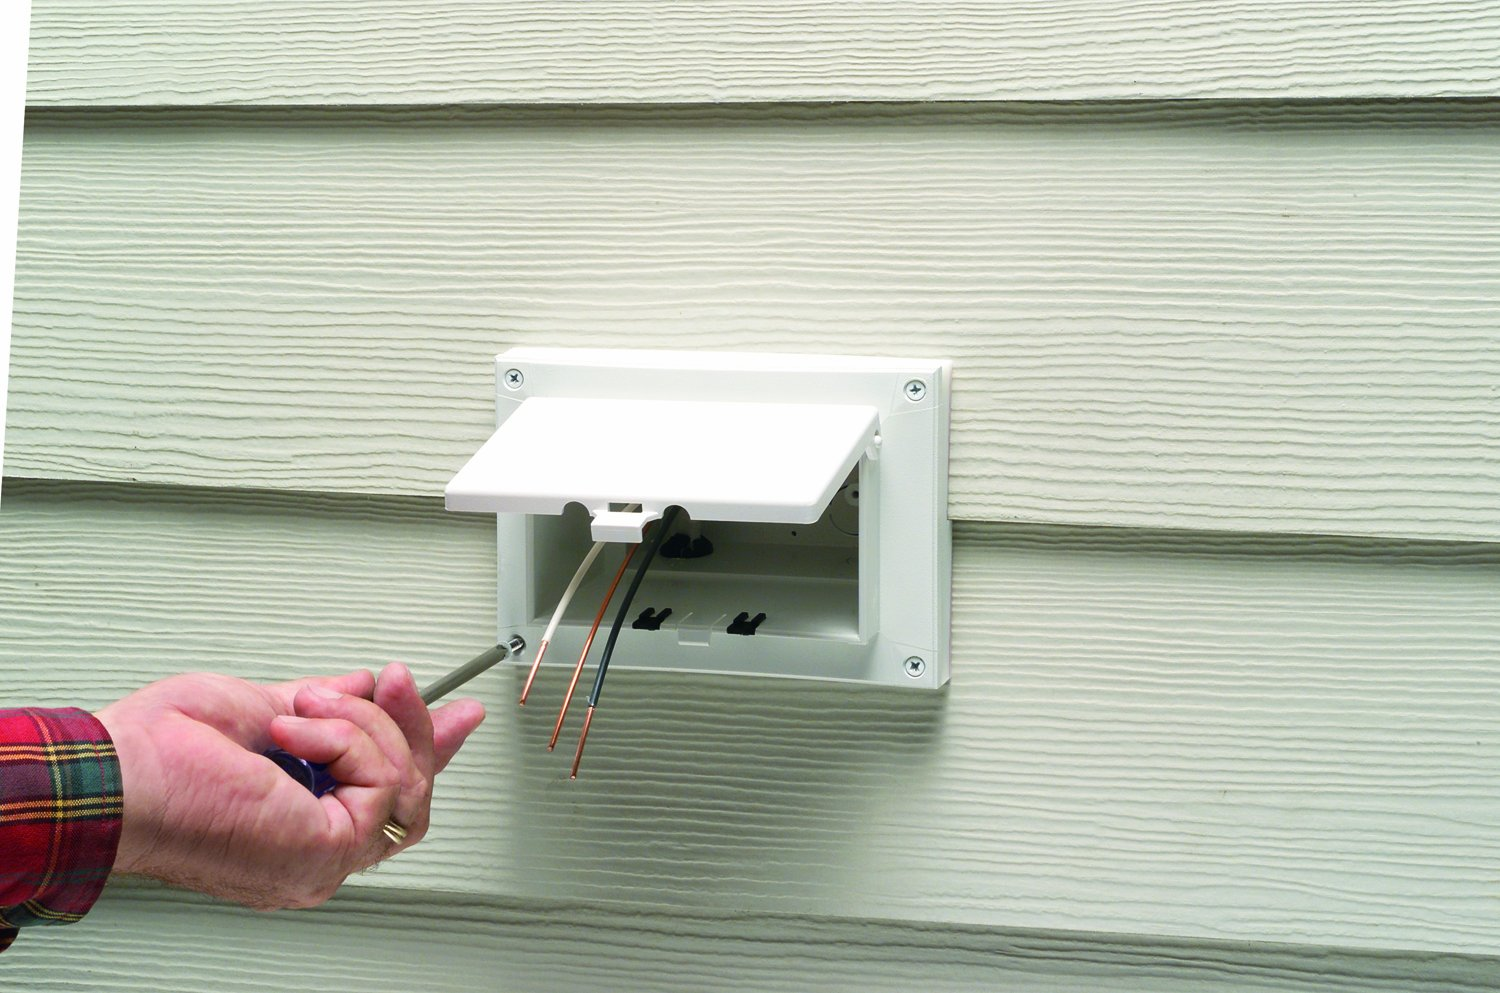 Arlington Dbhr171w 1 Low Profile In Box Electrical With Inwall Wiring Kit Prewired Tv Bridge 1gang Boxes White Weatherproof Cover For Retrofit Siding Construction Dutch Lap Horizontal